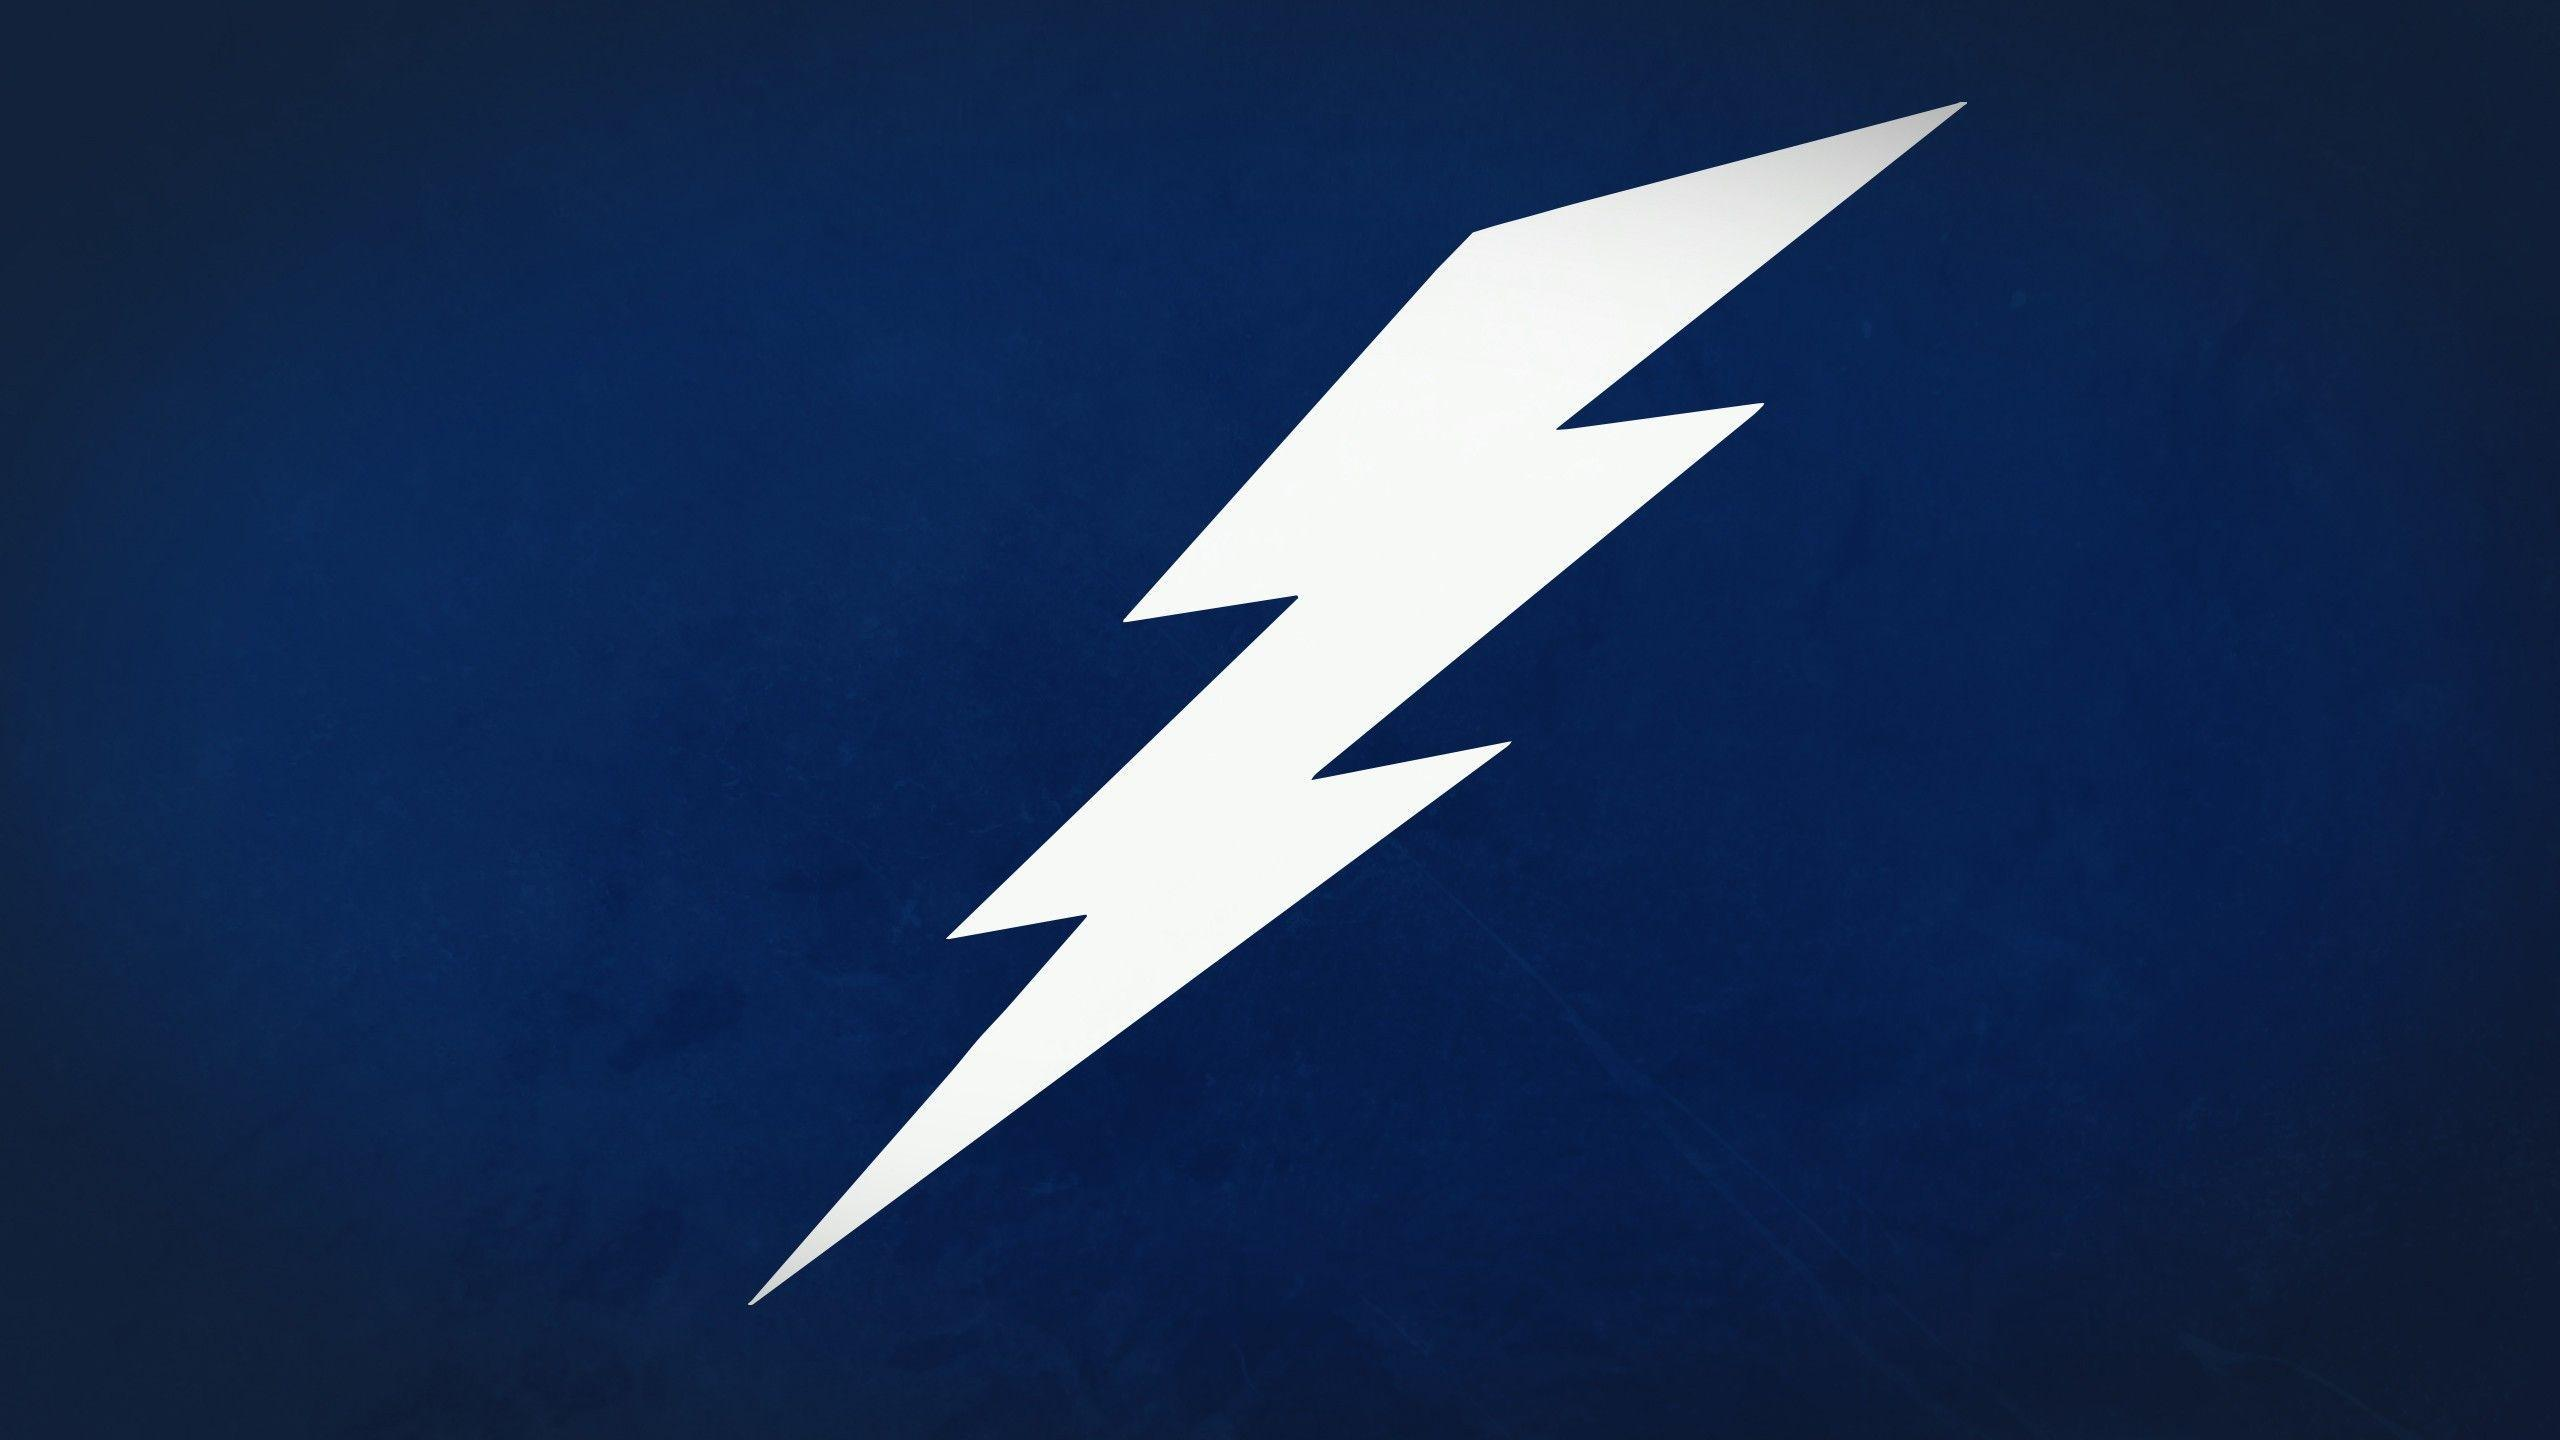 Tampa Bay Lightning Wallpapers 2560x1440